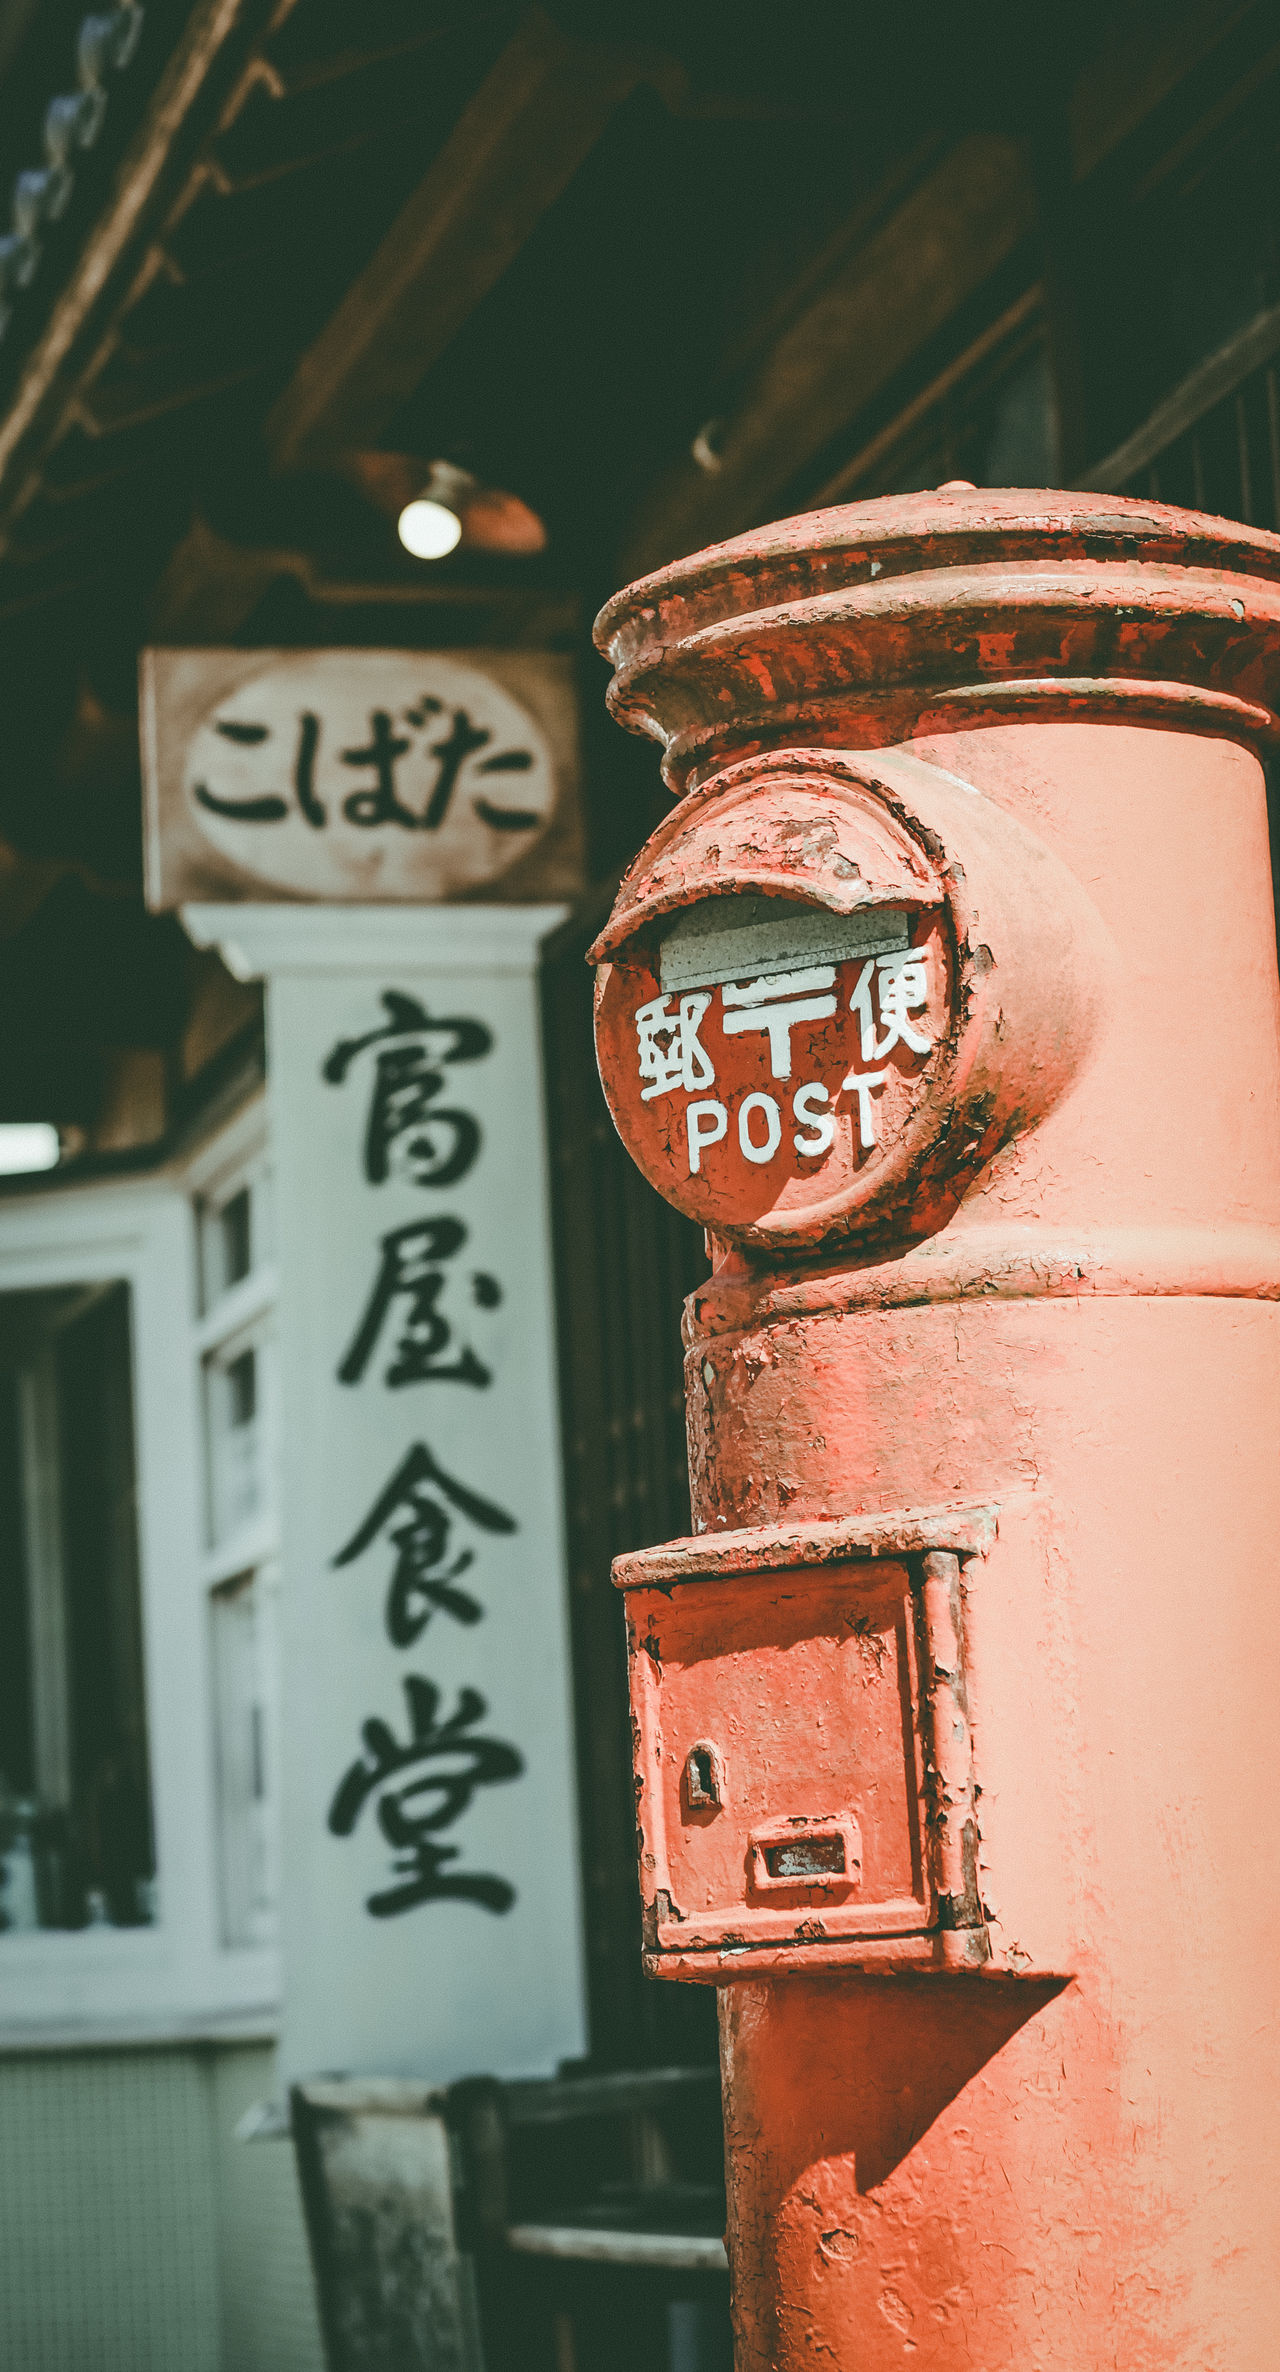 Day Focus On Foreground Japan Japan Photography Japanese  No People Outdoors Post Postbox Spring Street Streetphotography Summer Text Traditional